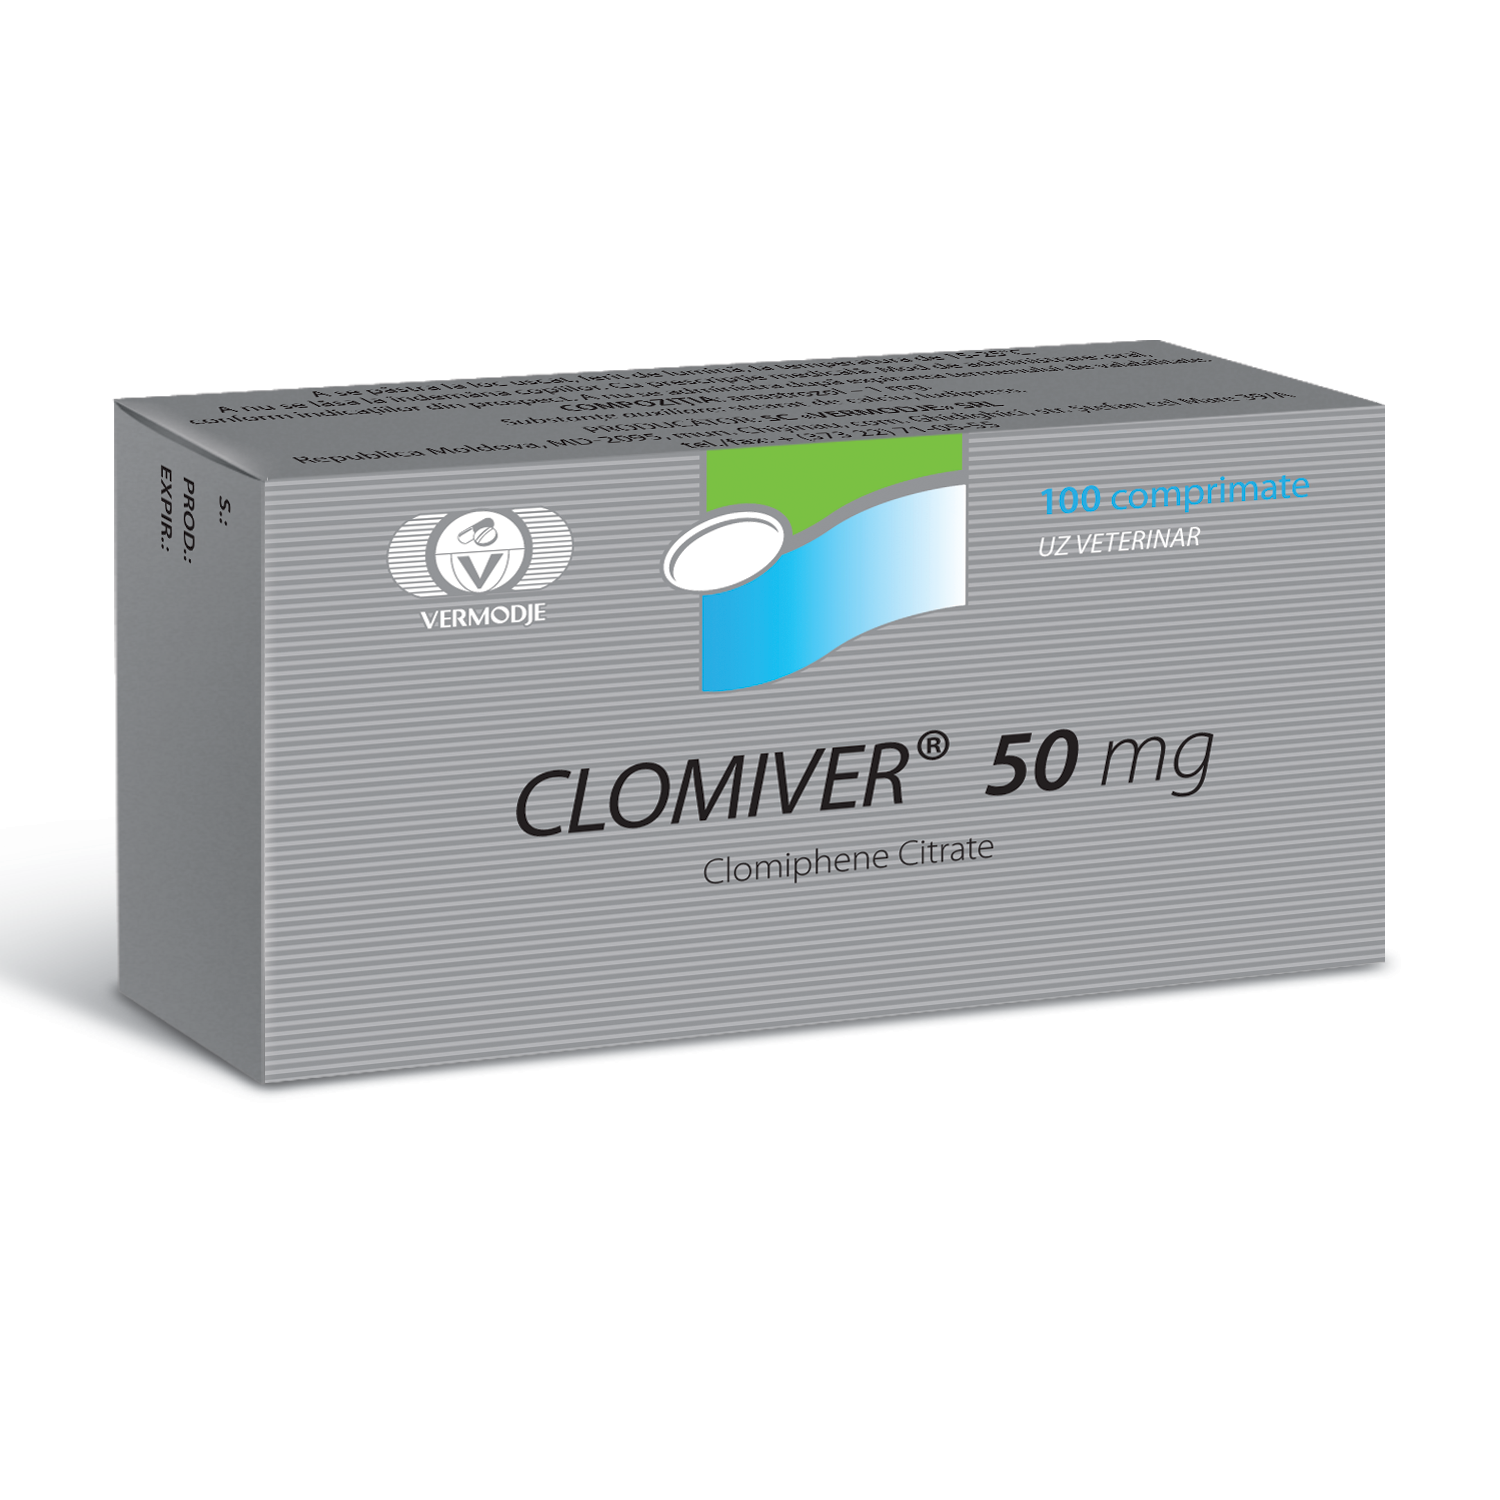 Clomiver (Clomiphene Citrate) 50 mg 100 Tabs